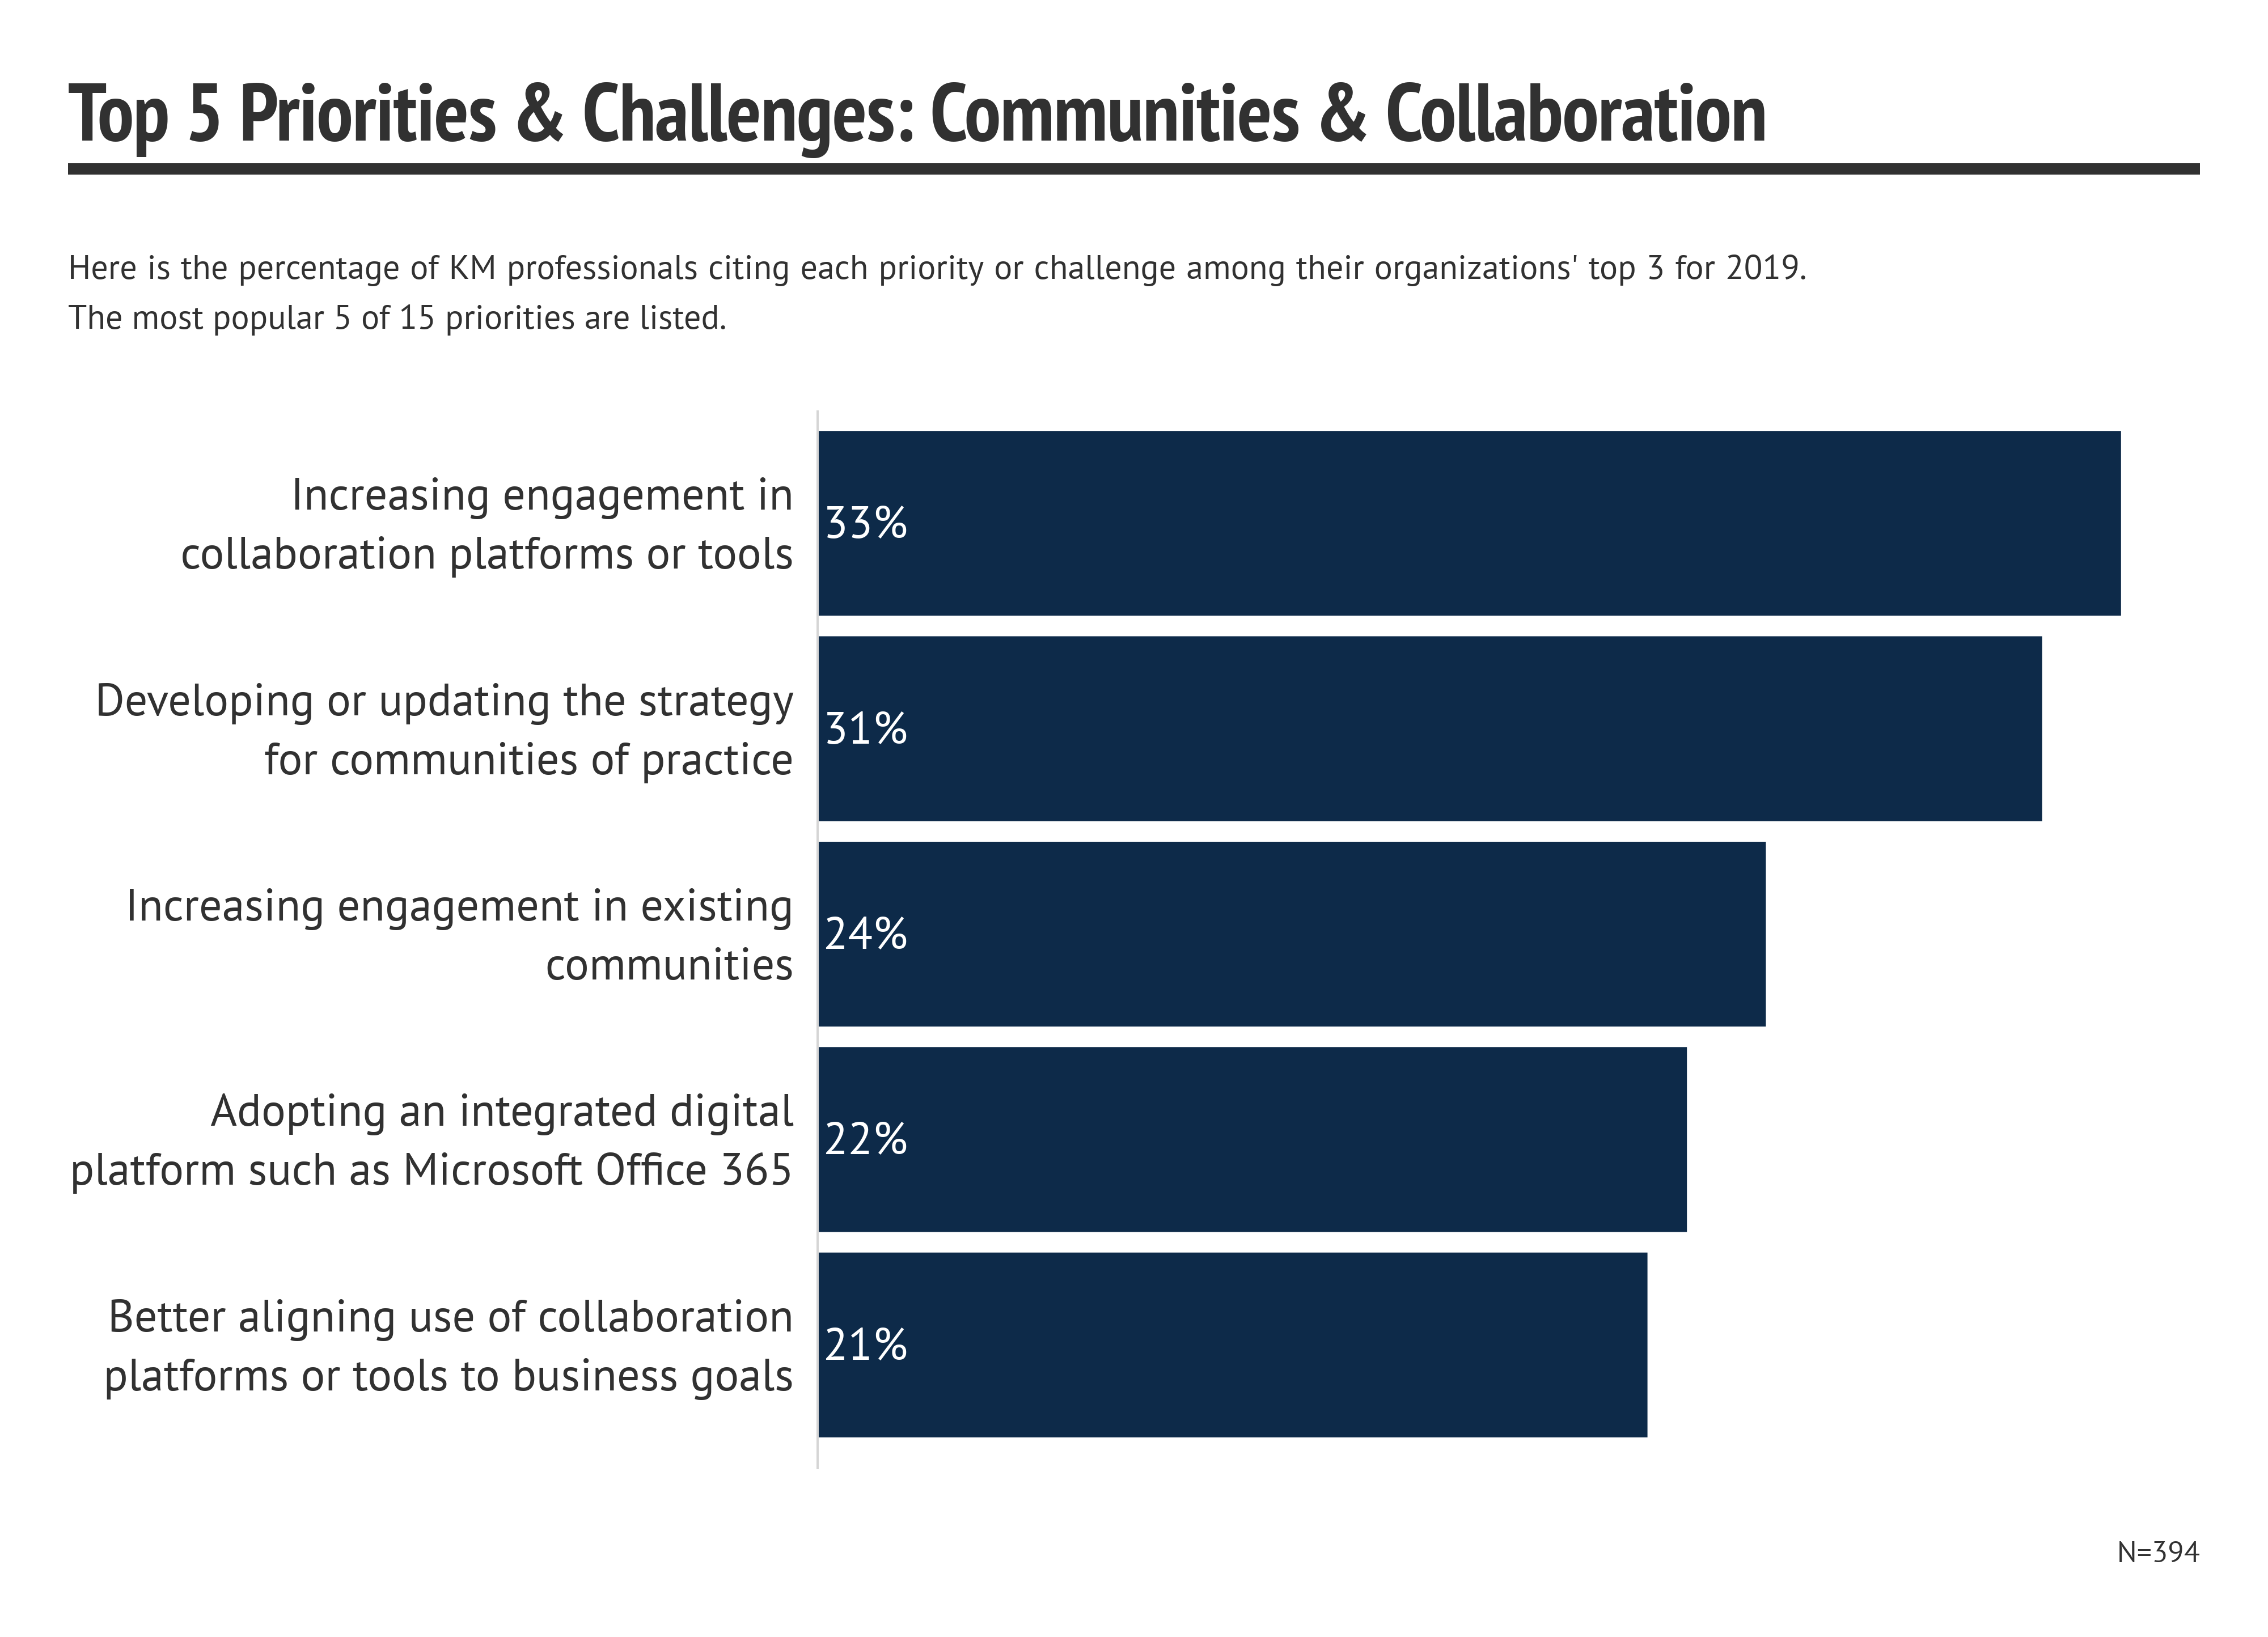 Top Knowledge Management Communities and Collaboration Priorities for 2019